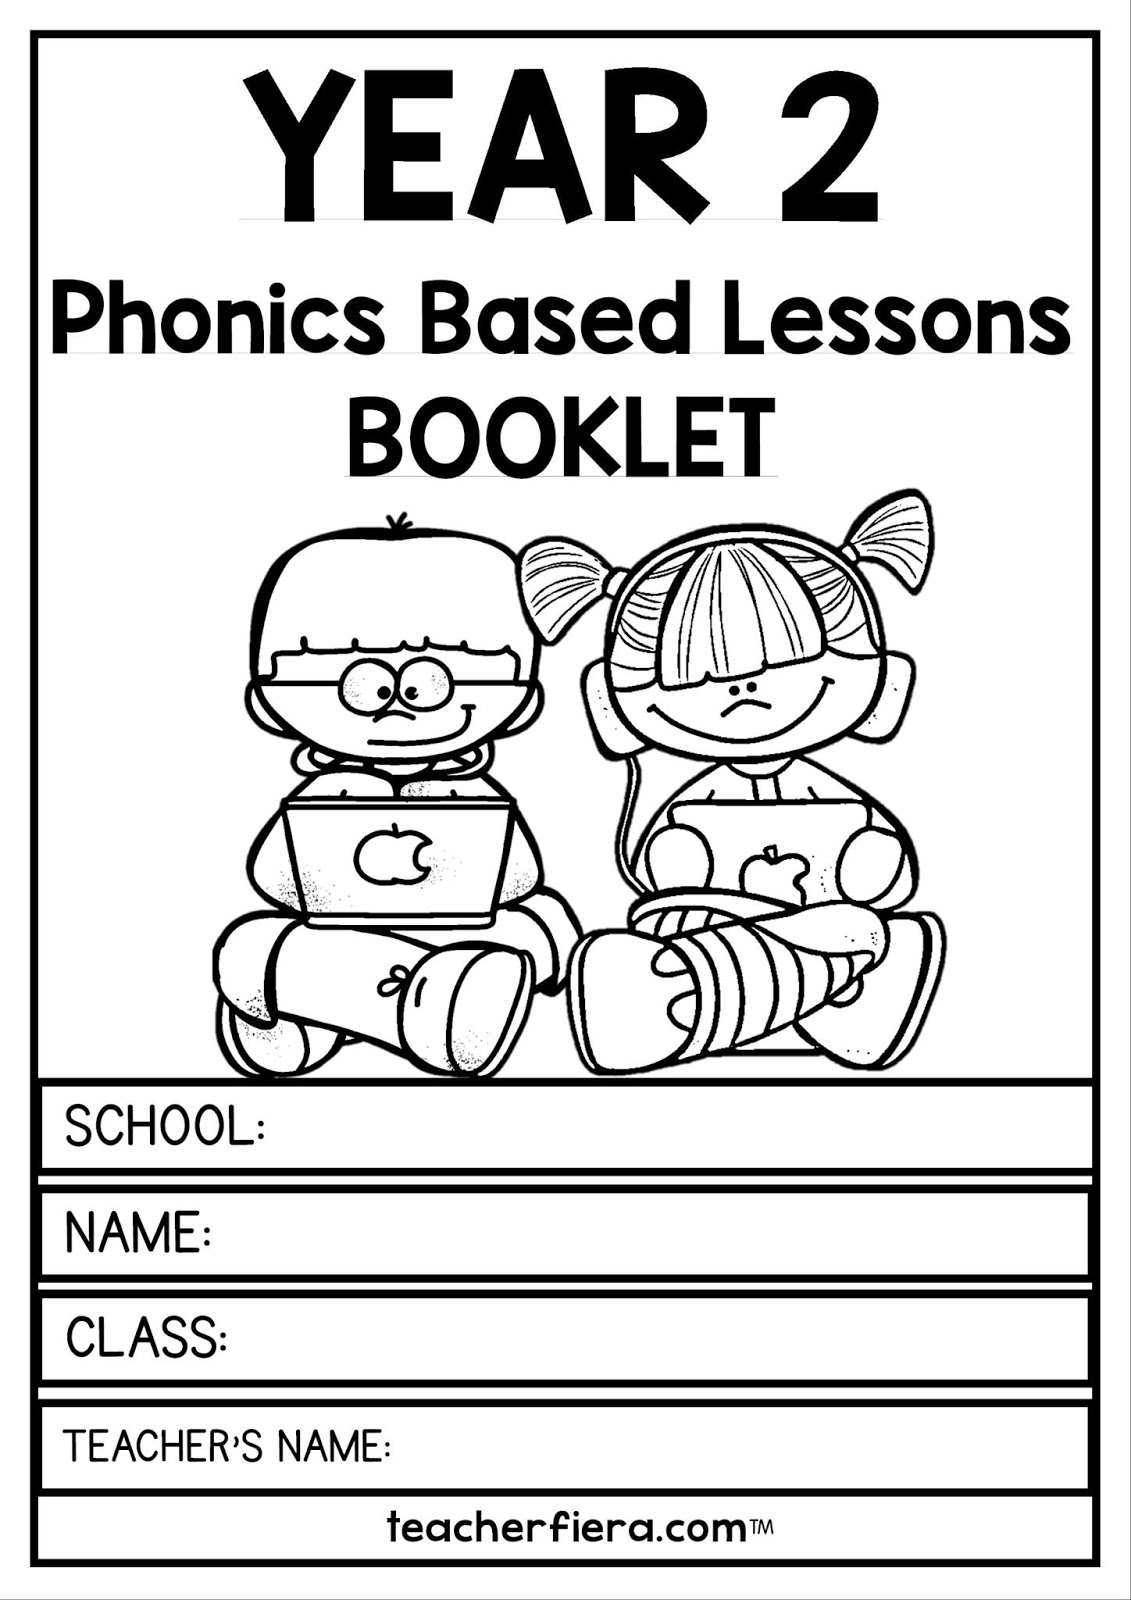 Teacherfiera Year 2 Phonics Based Lessons Booklet